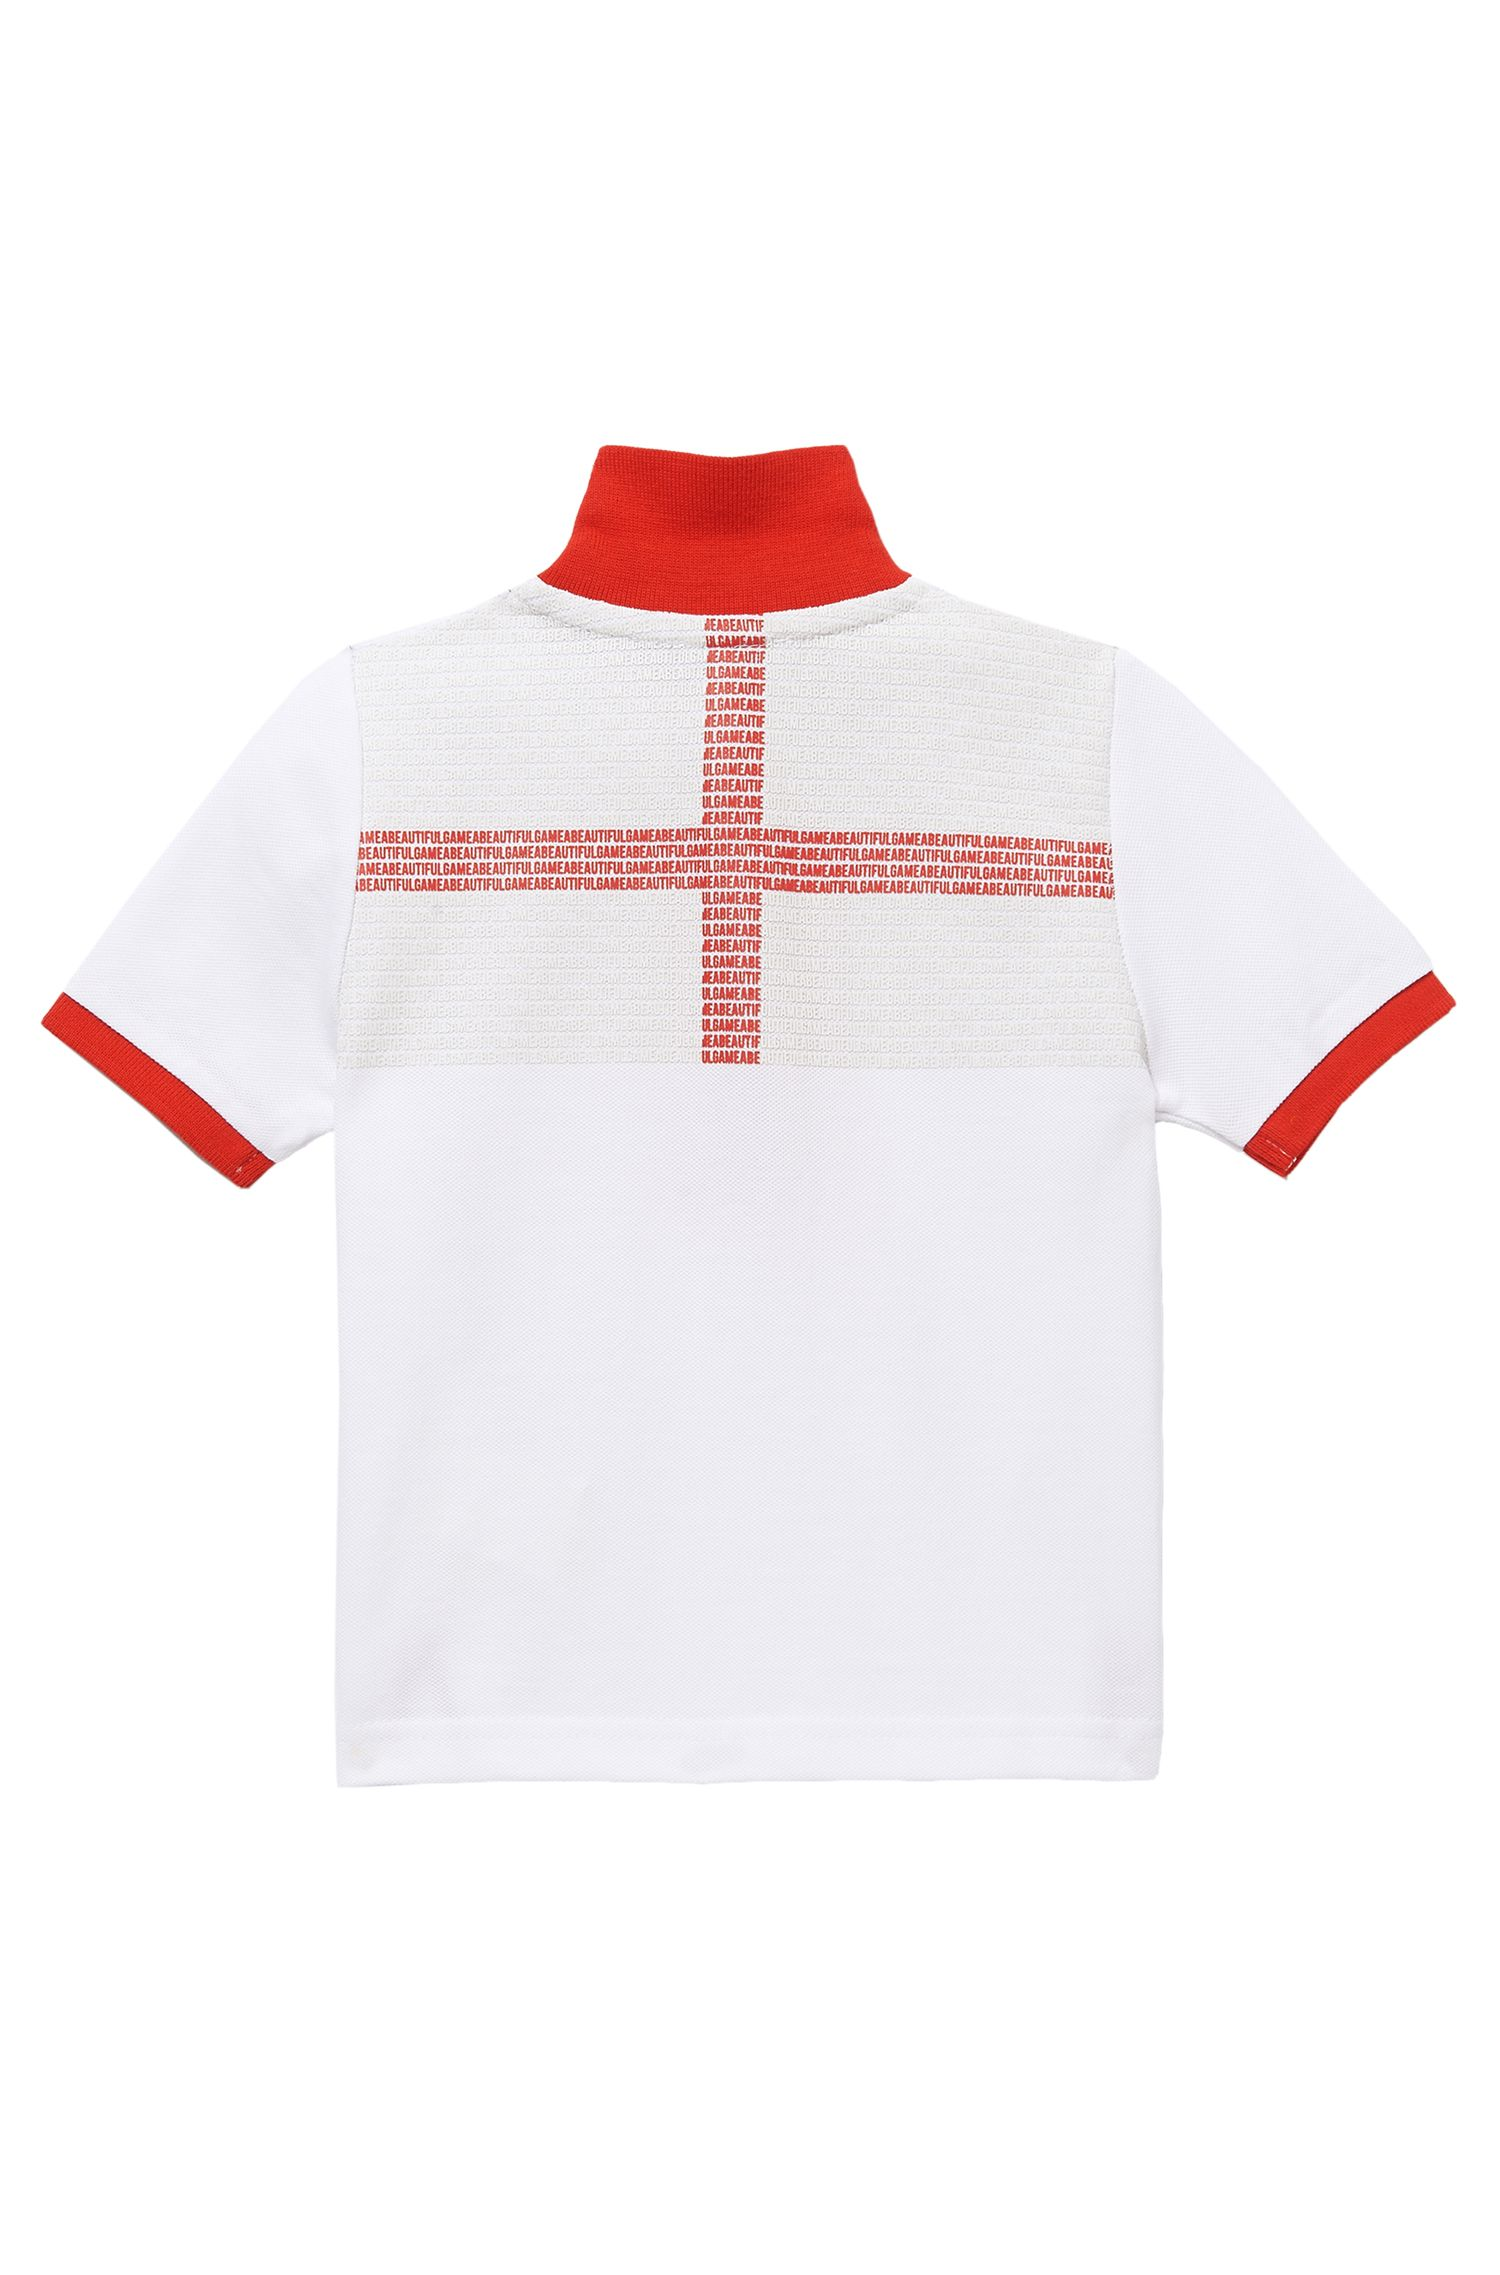 'J25671' | Boy's Country Cotton Polo Shirt with Flag Back